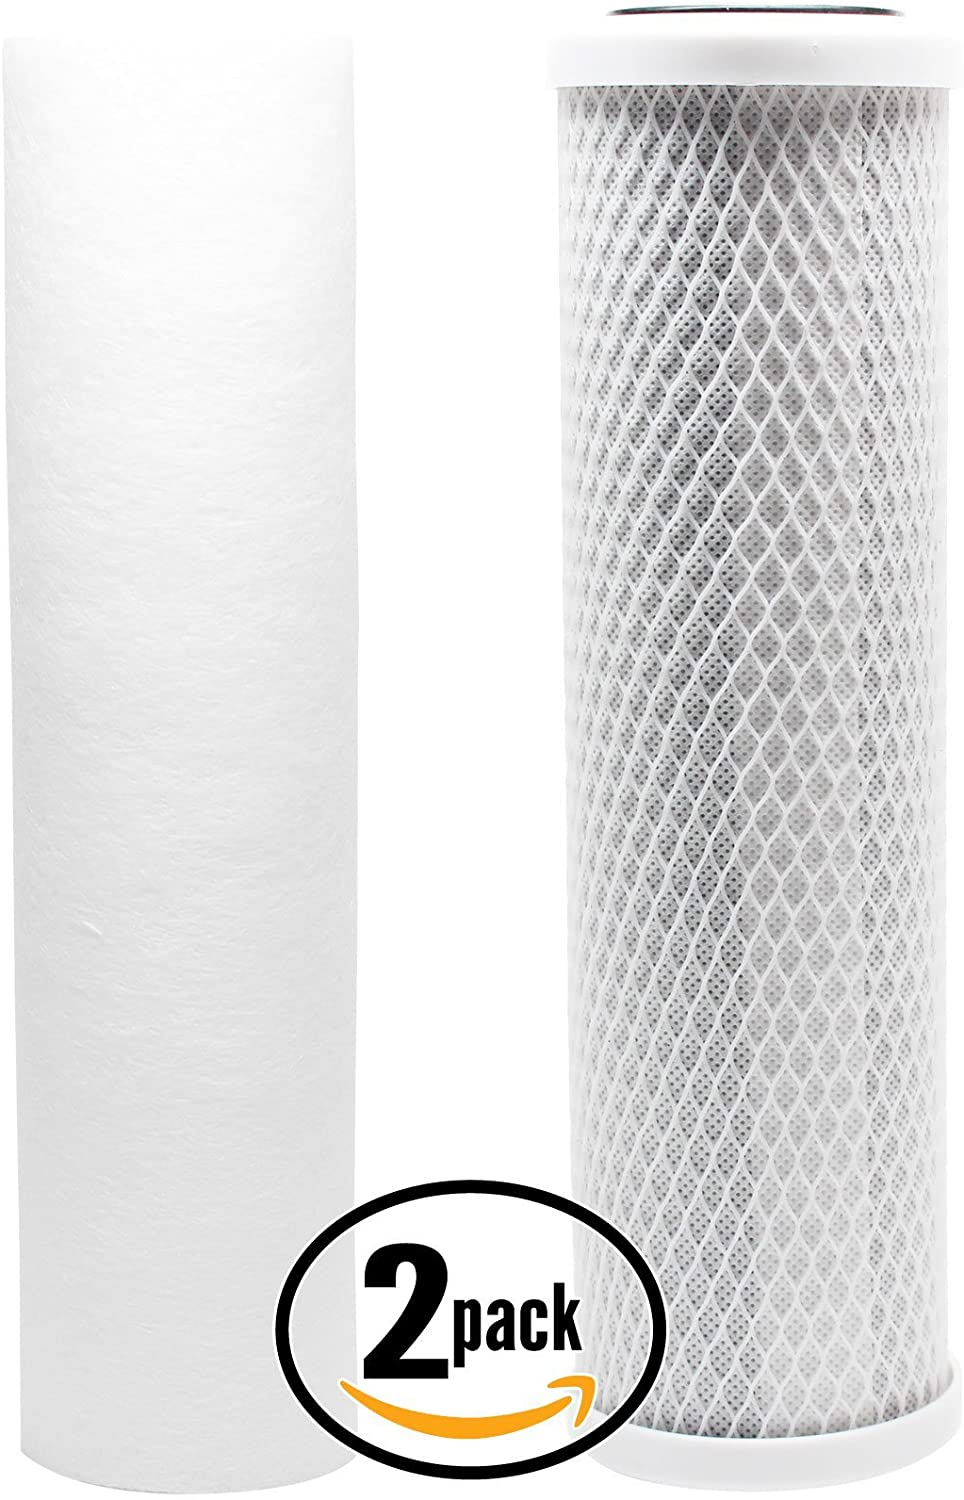 2-Pack Replacement Filter Kit Compatible with Watts WP-2 LCV RO System - Includes Carbon Block Filter & PP Sediment Filter - Denali Pure Brand